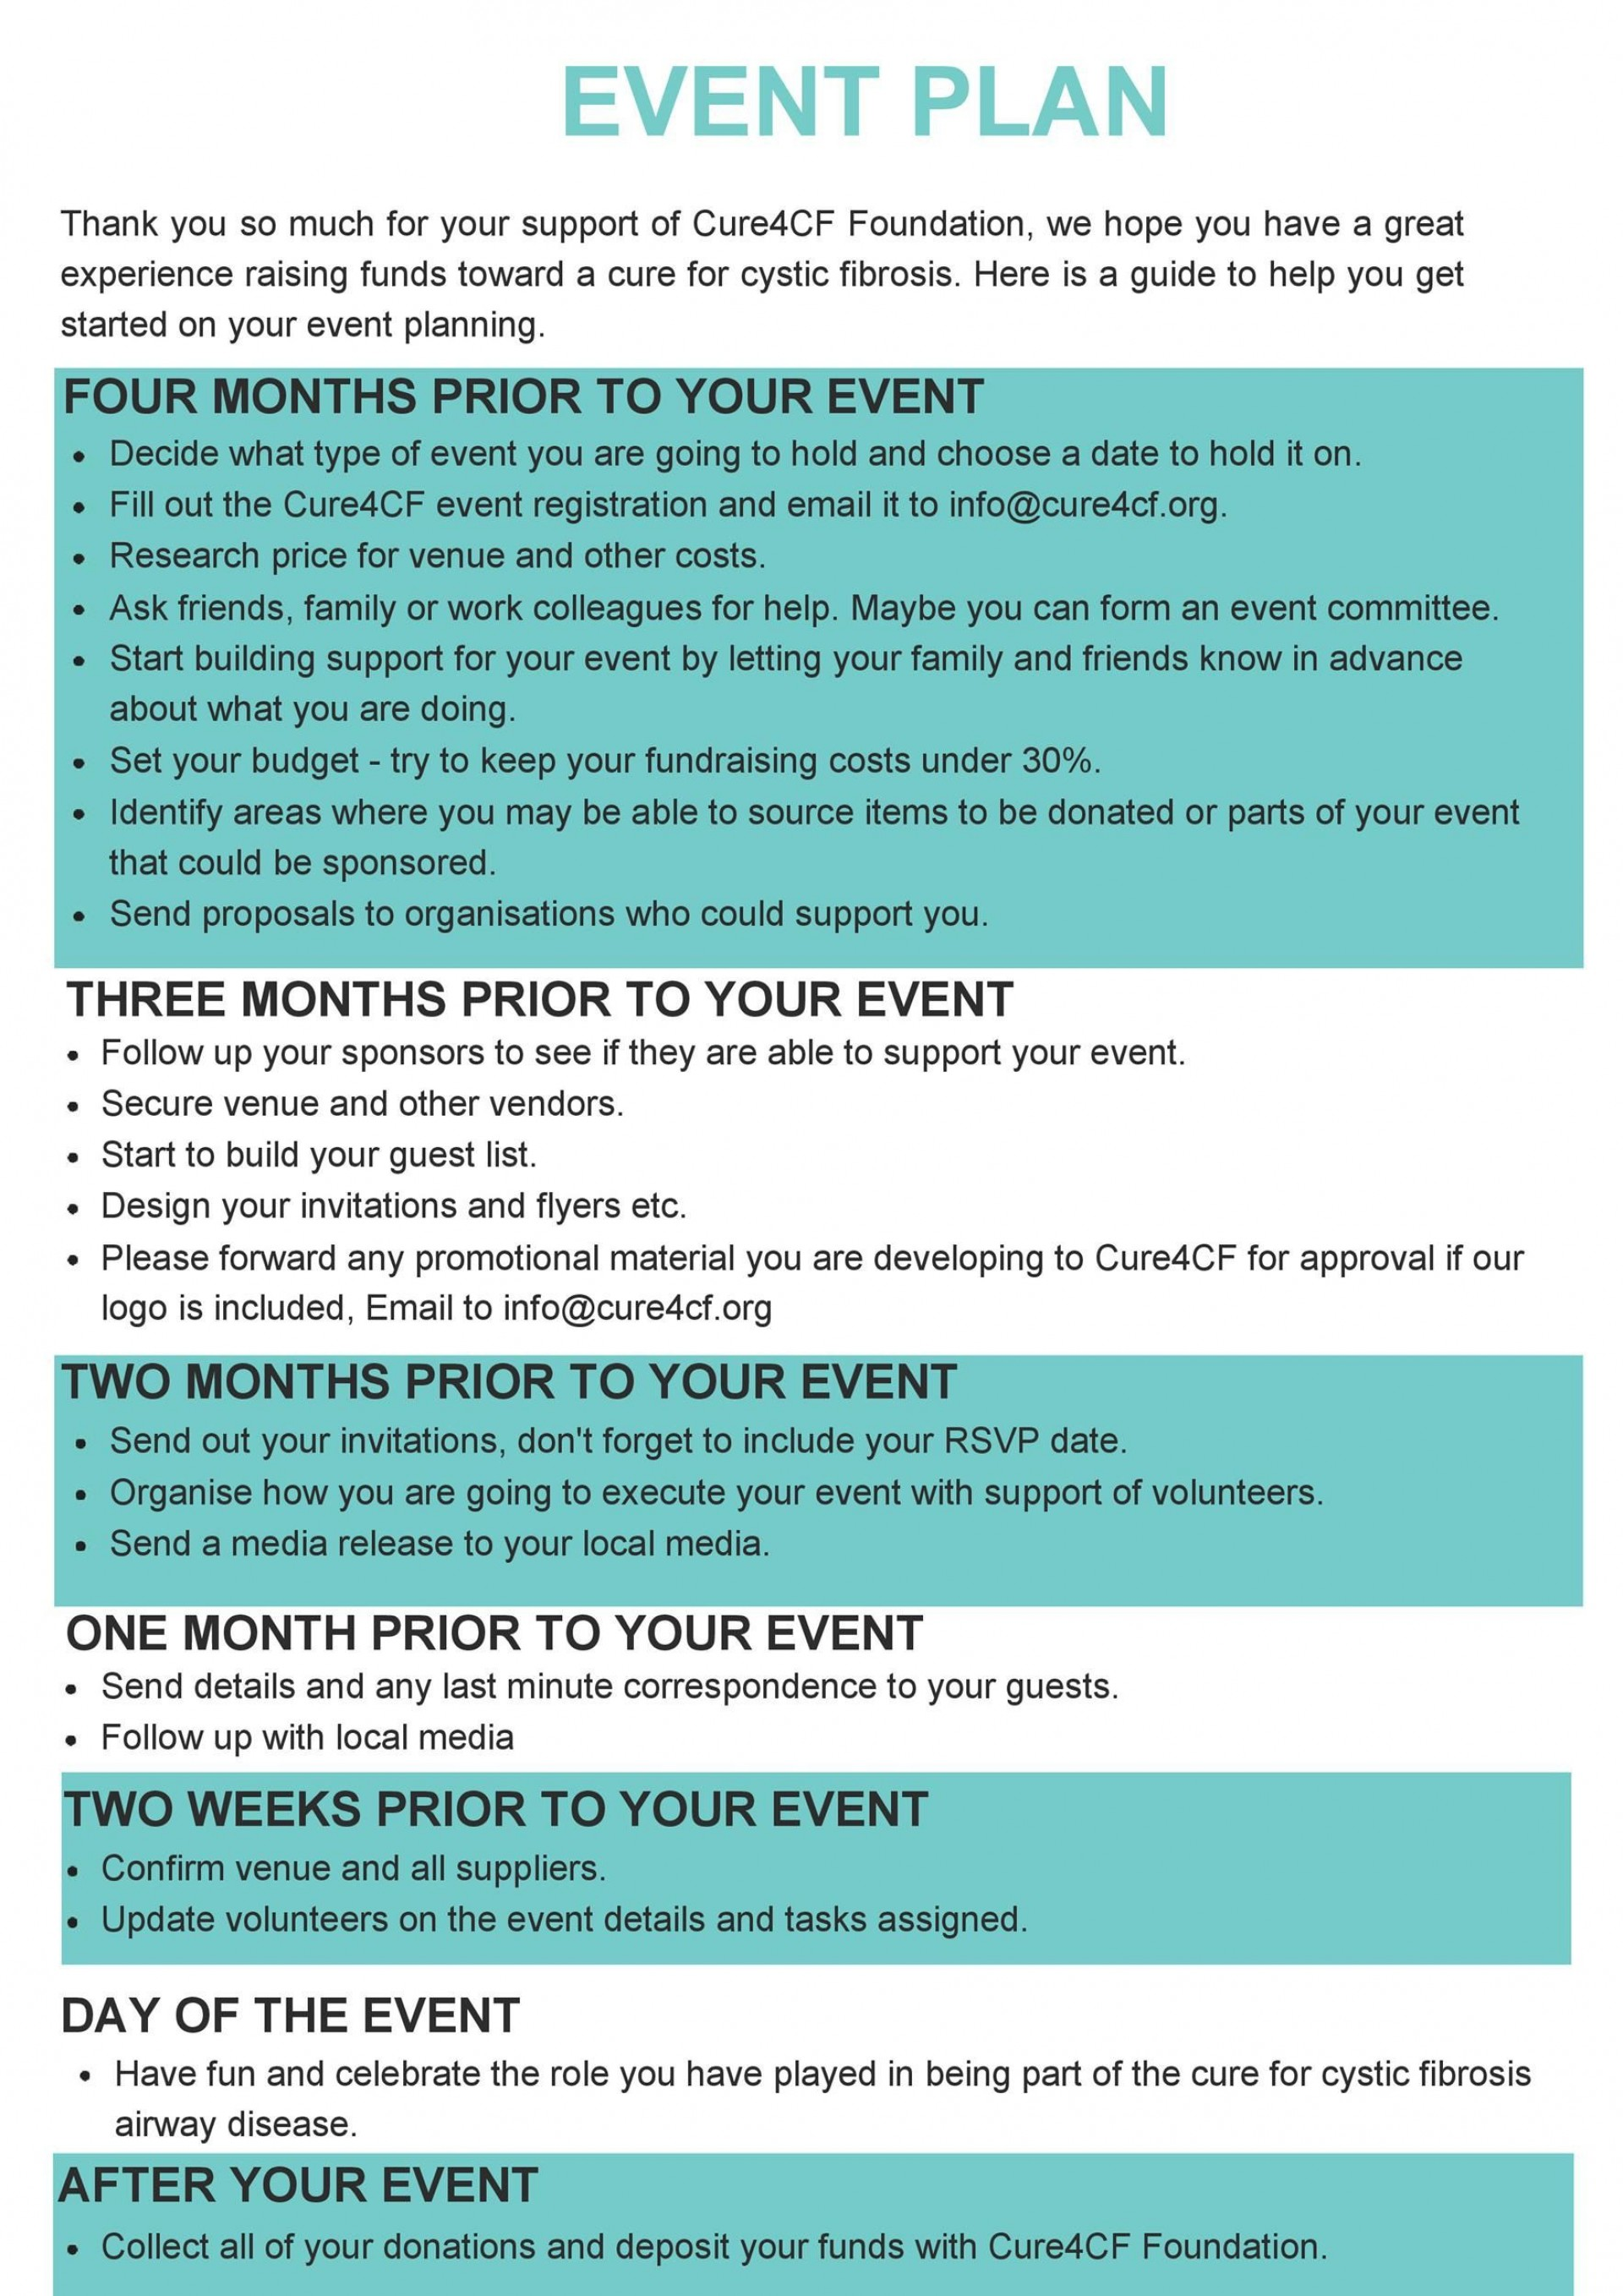 003 Rare Free Event Planning Template Download Highest Clarity  Budget1920